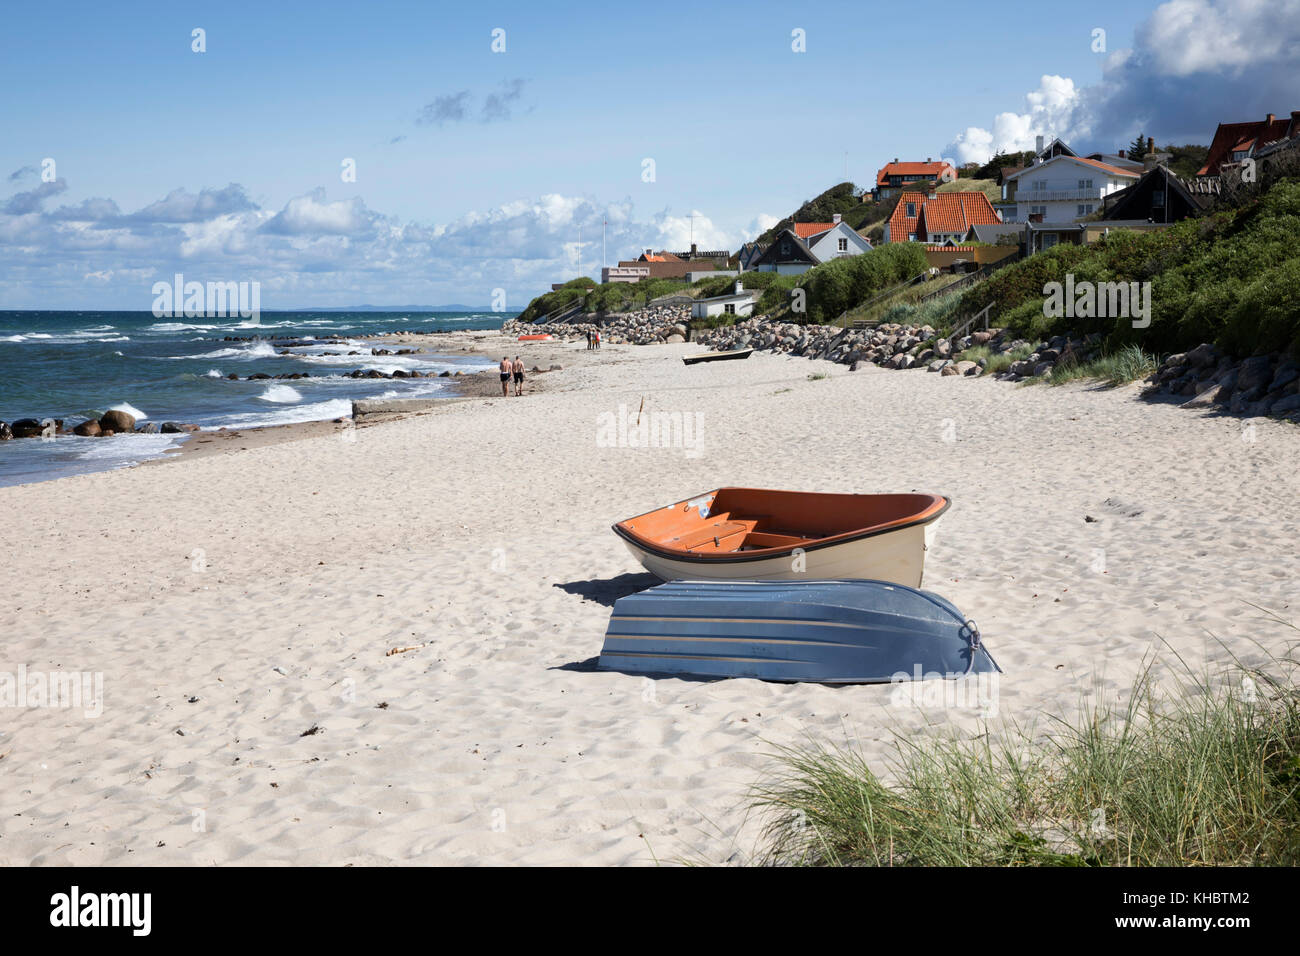 Boats on white sand beach and town behind, Tisvilde, Kattegat Coast, Zealand, Denmark, Europe - Stock Image